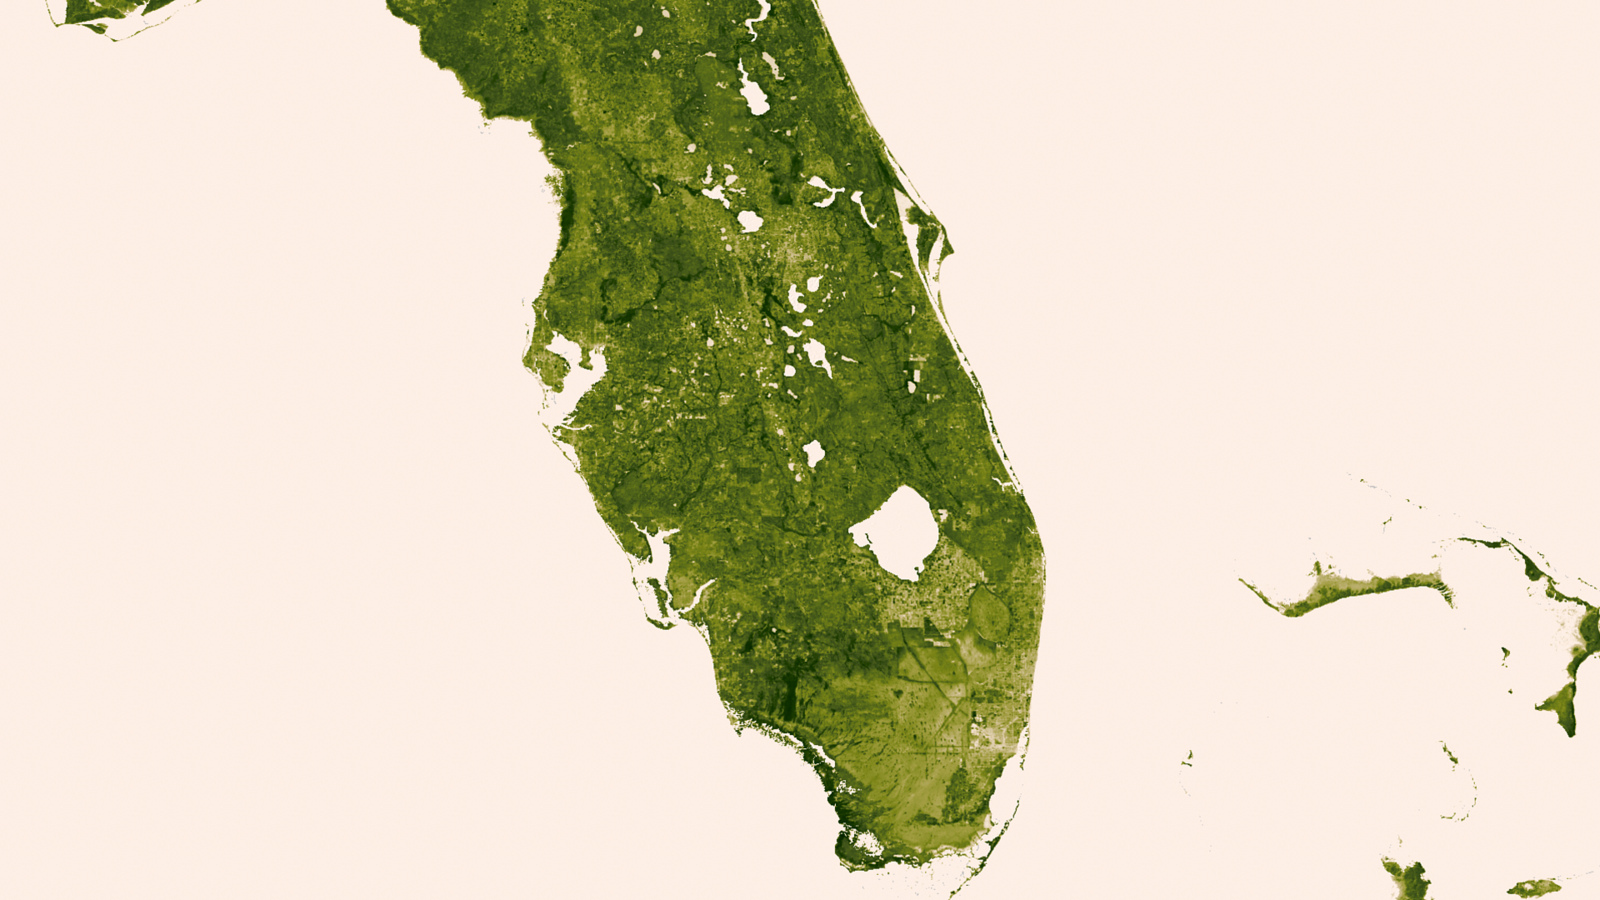 Herbal Earth: Florida Everglades